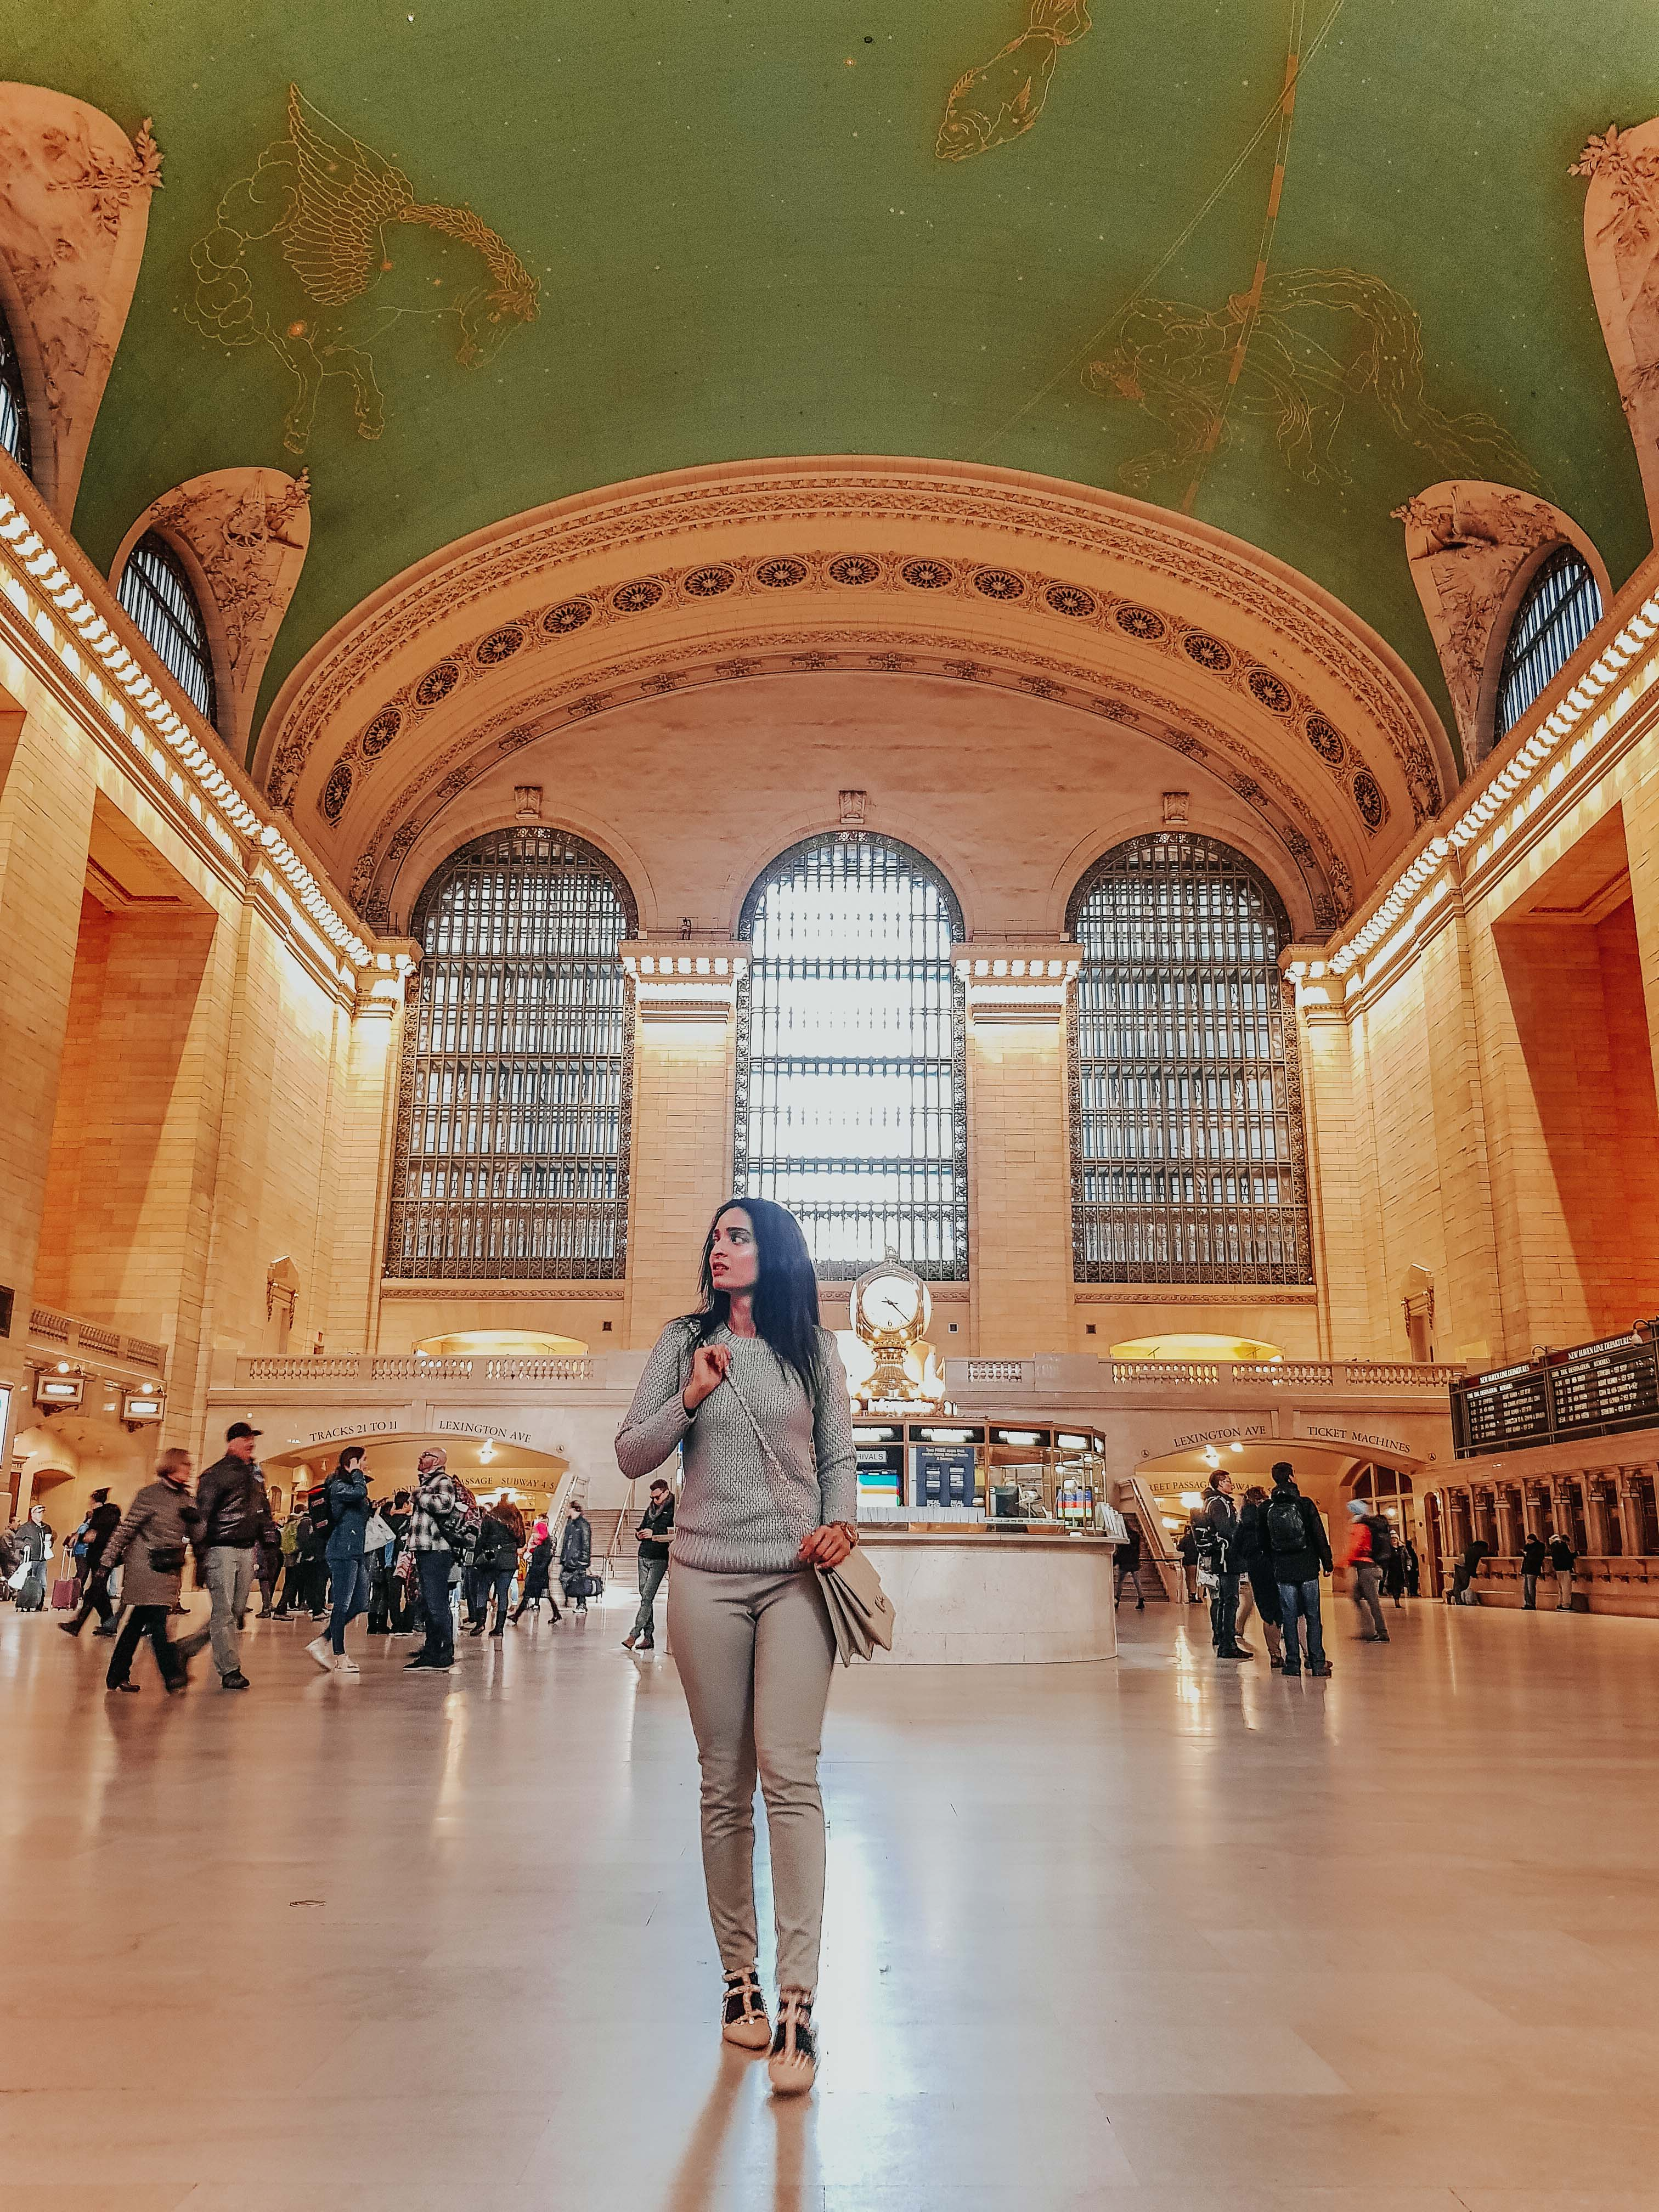 girl standing inside the grand central train station as part of new york travel guide